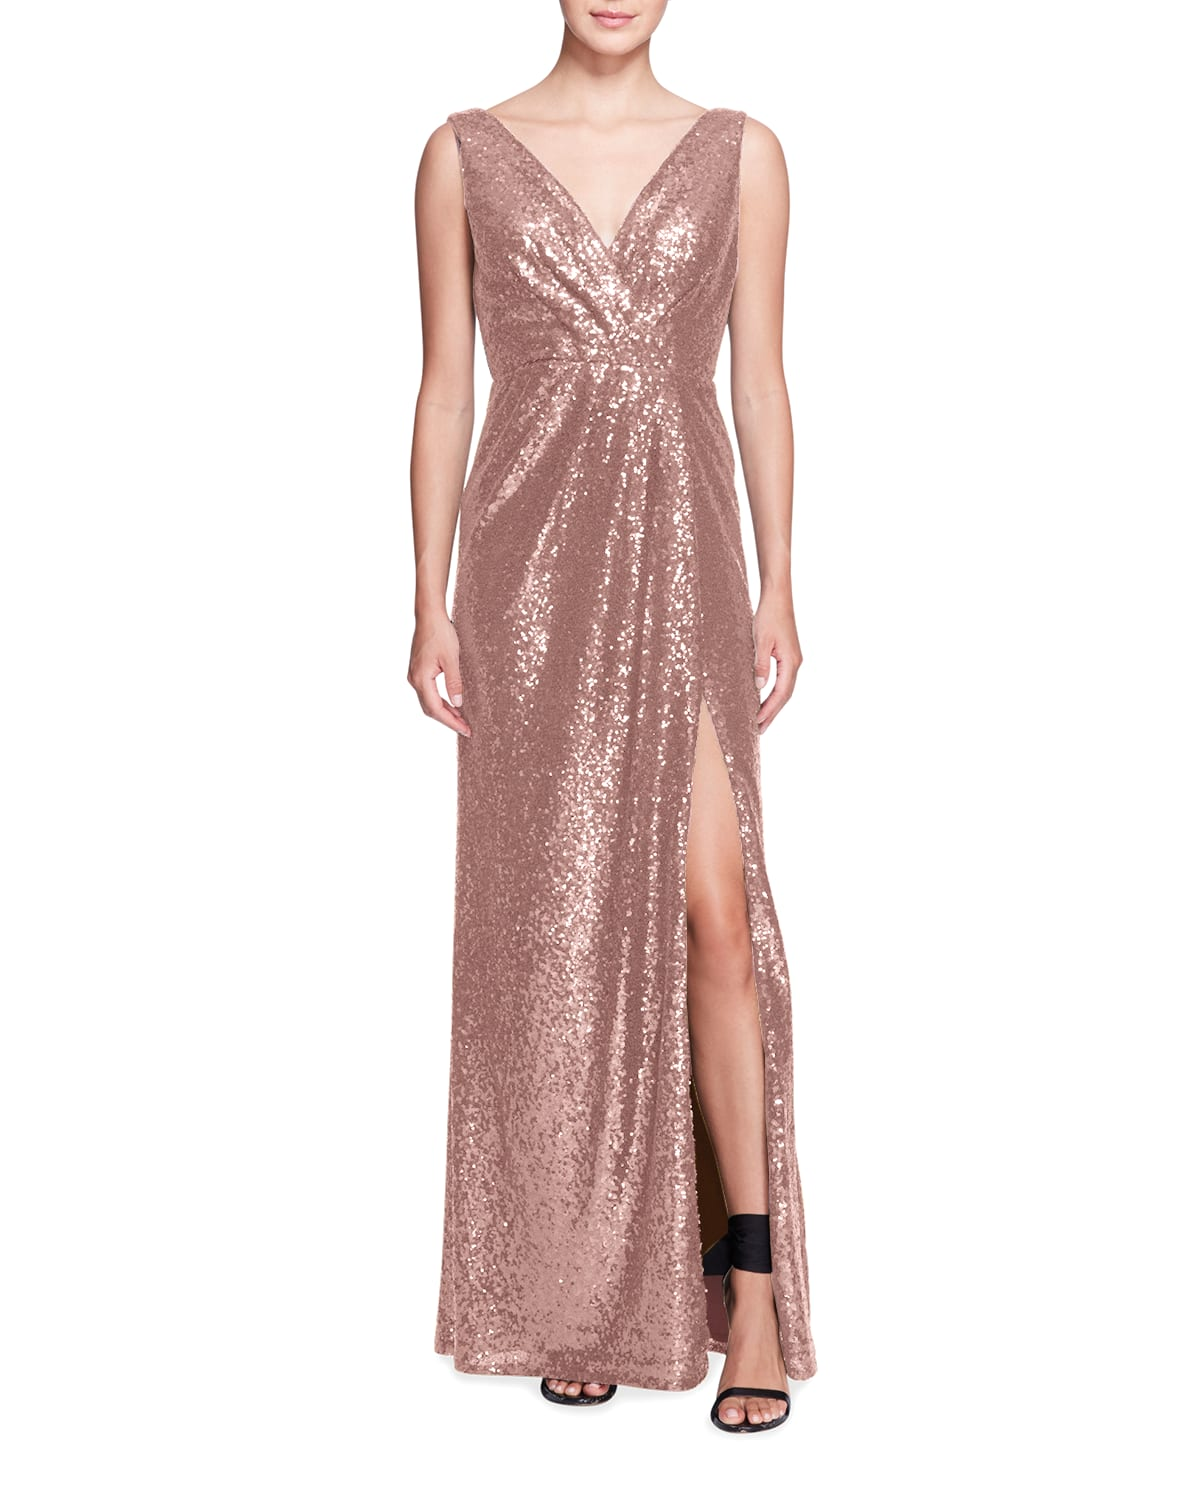 Sequined Draped Sleeveless Gown with Slit